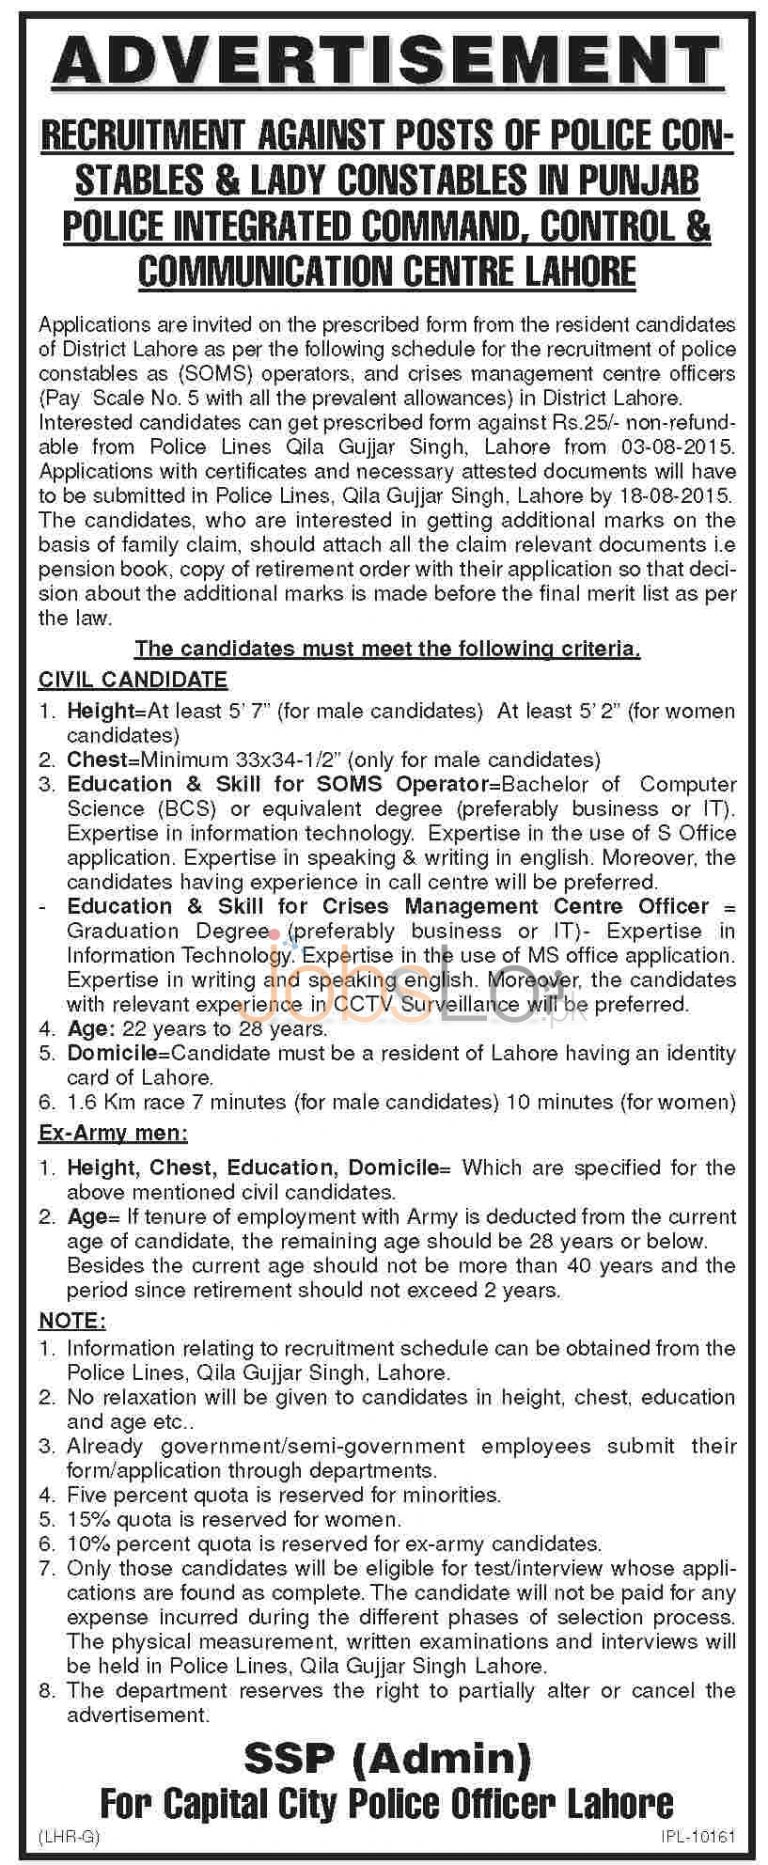 Punjab Police Constable & Lady Constable Jobs August 2015 Application Form